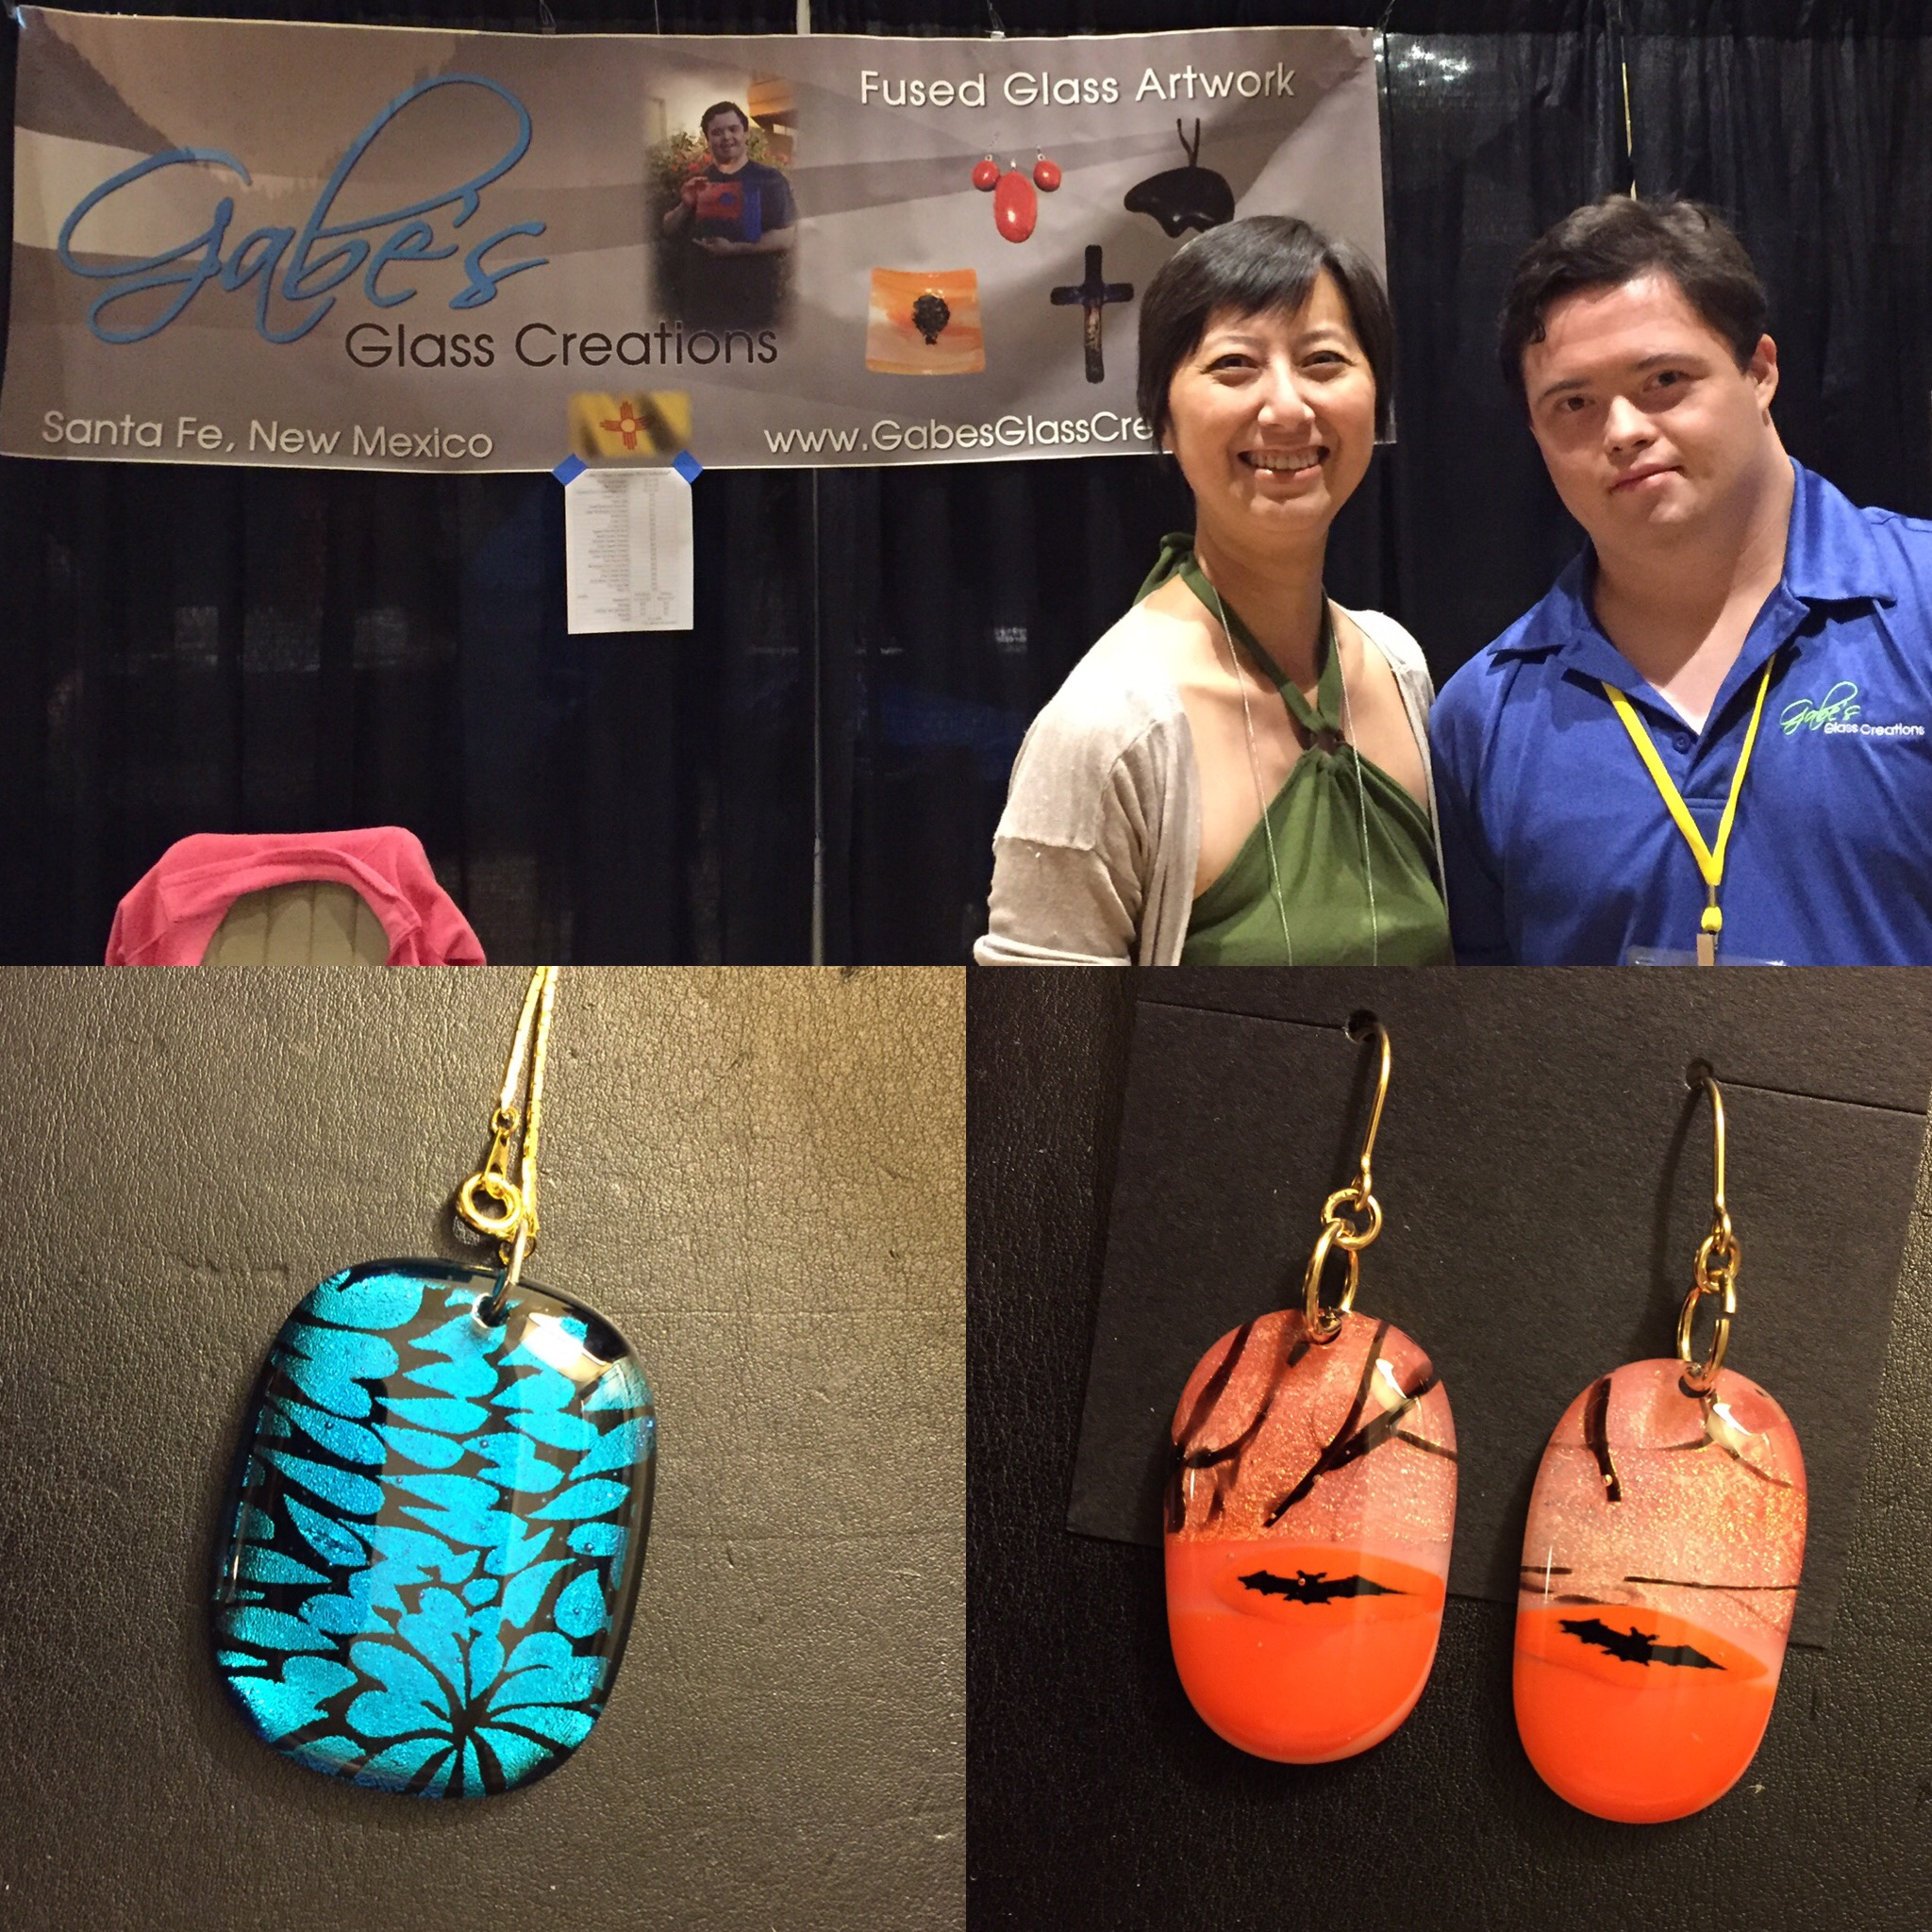 Gabe's Glass Creations  makes fused glass art in forms of crosses, dishes, jewelry, sun catchers, coasters and more.